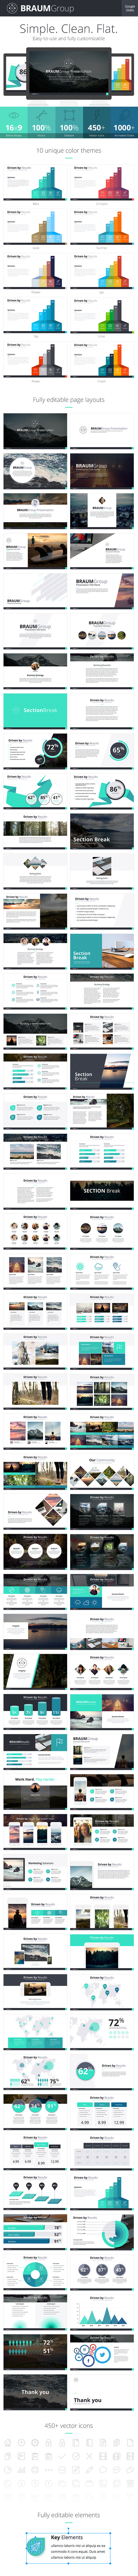 Braum Google slides Presentation Template - Google Slides Presentation Templates